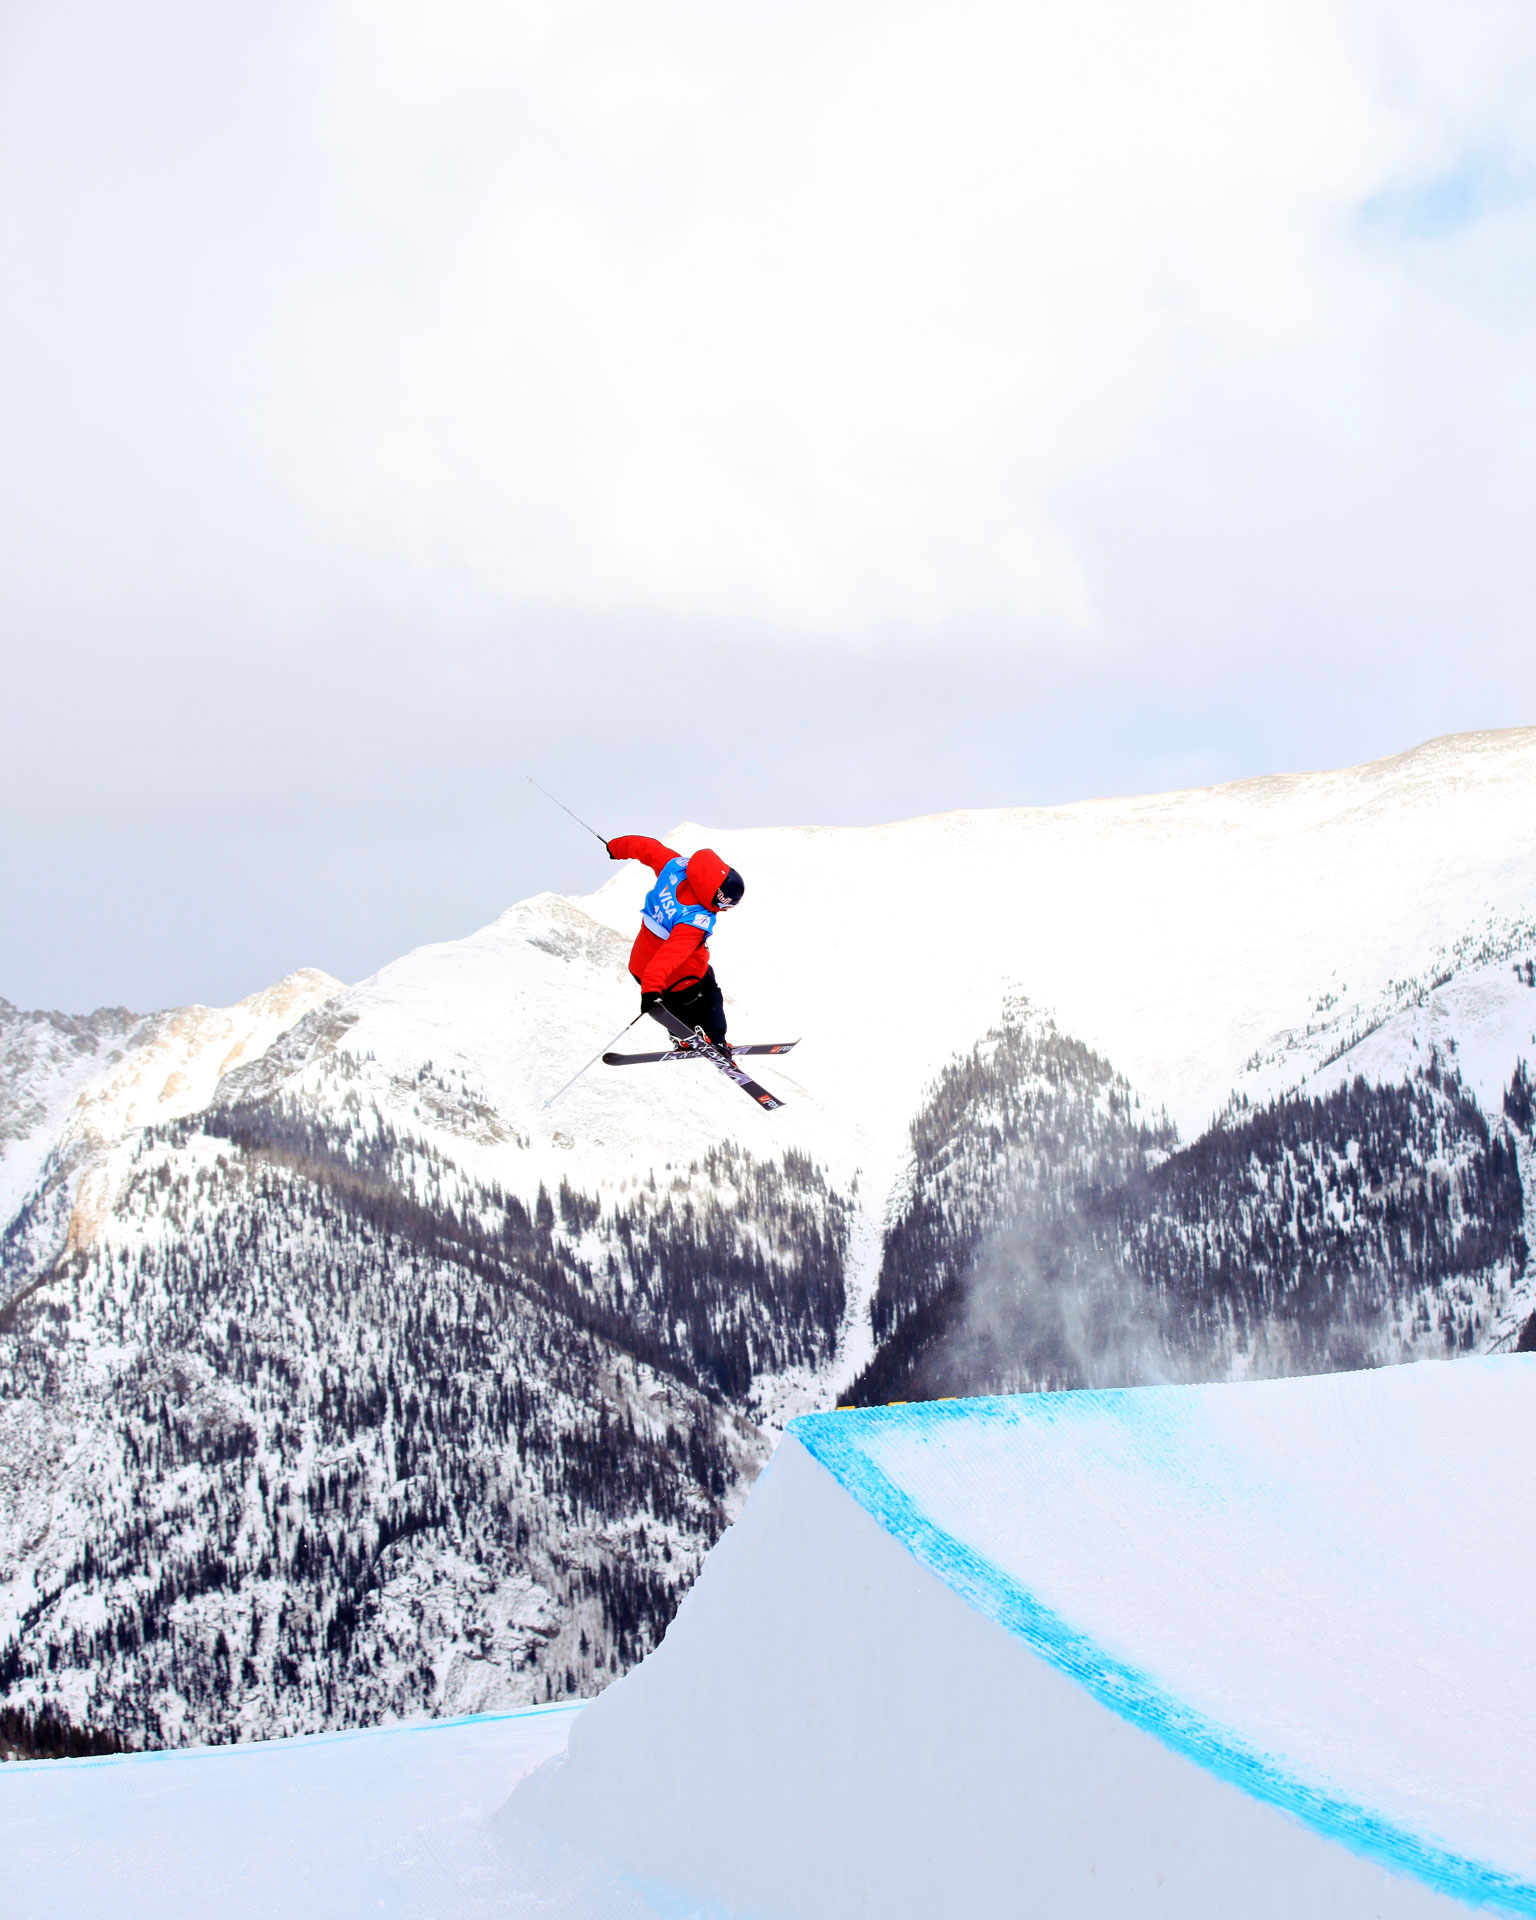 Nick Goepper dominated in 2013, and he's started the 2014 season in style, winning Dew Tour Breckenridge and finishing second at the Grand Prix in Copper.